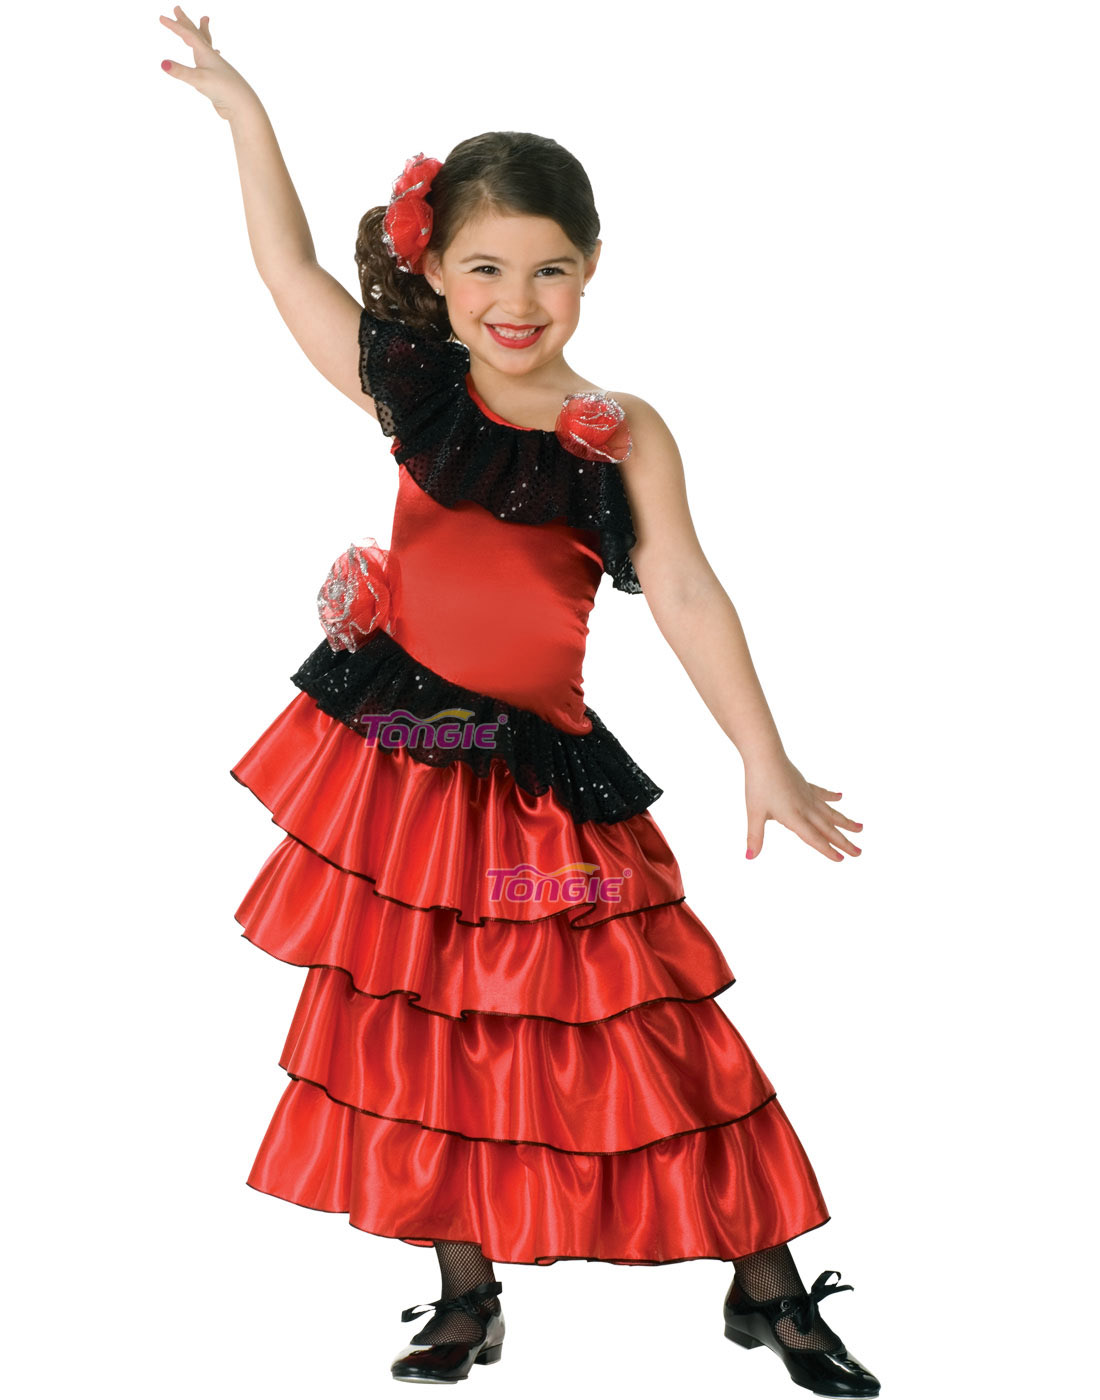 from Landon adult little girl costumes